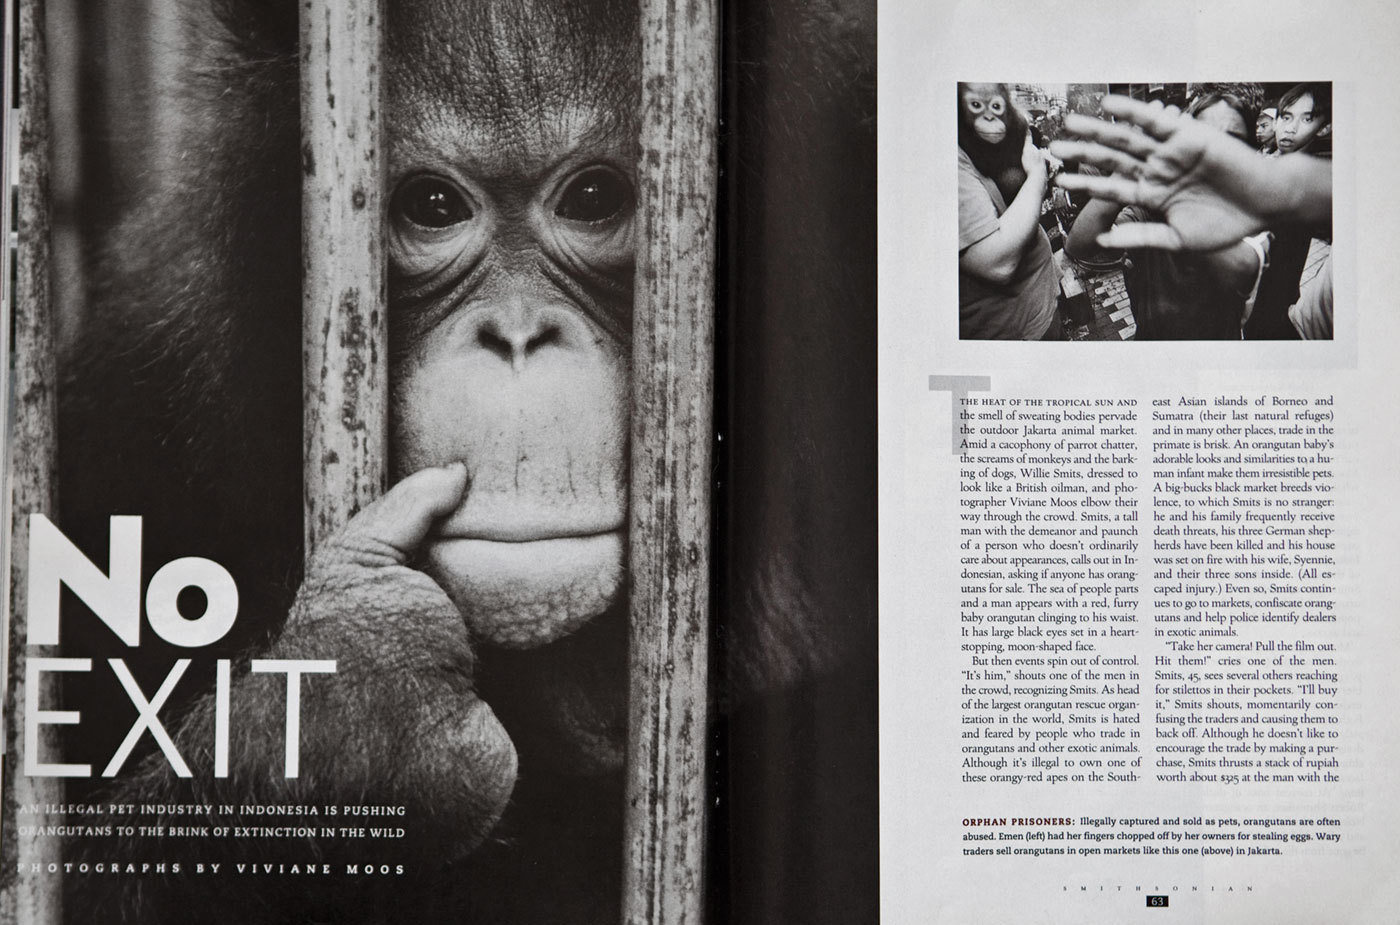 Orangutan extinction. Smithsonian Magazine, USA : TEAR SHEETS : Viviane Moos |  Documentary Photographer